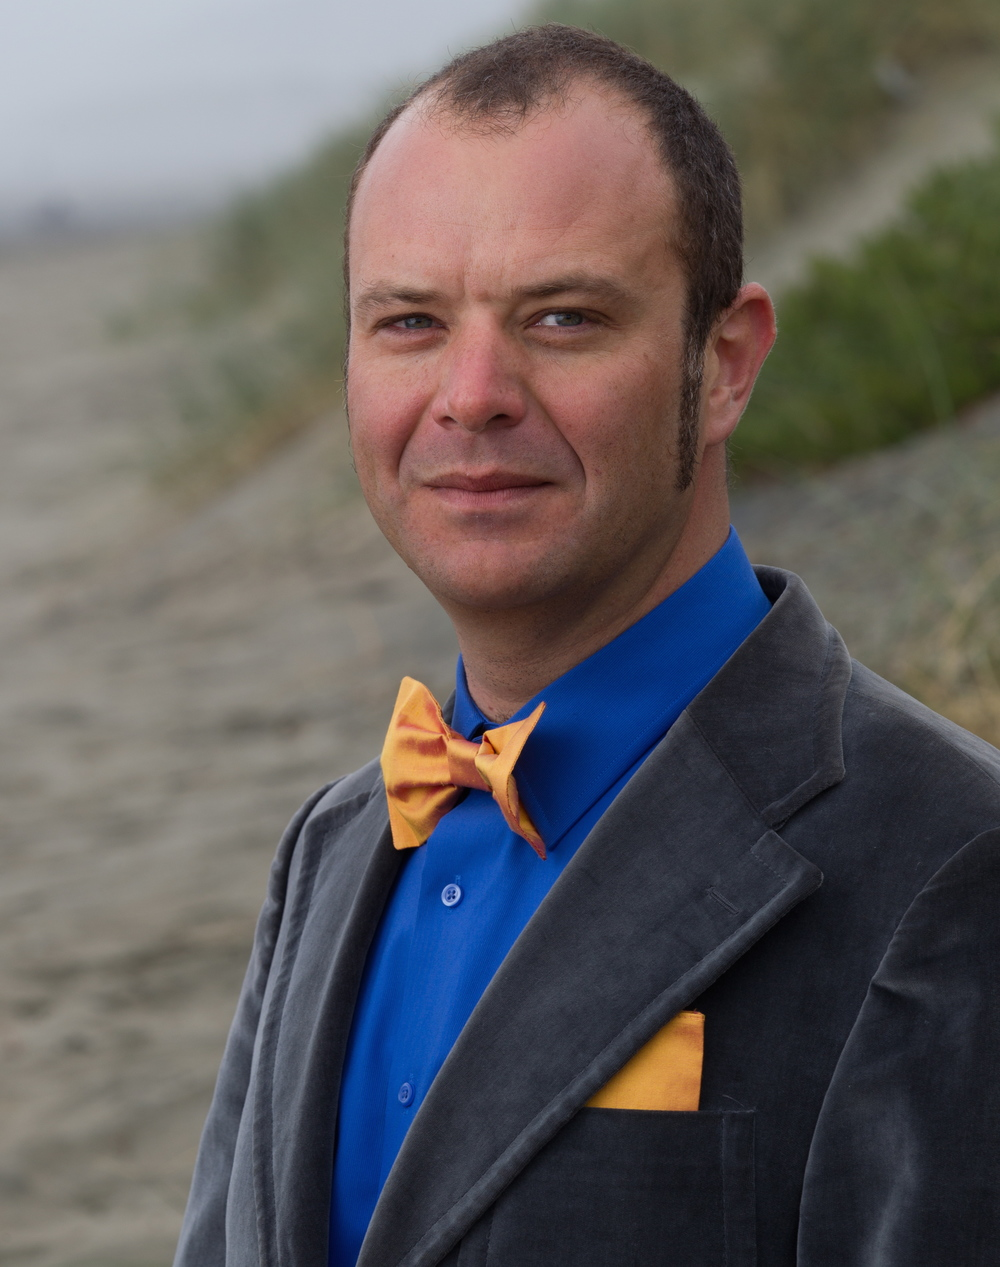 Gold bow tie and pocket square combined with a fun blazer to dress it up